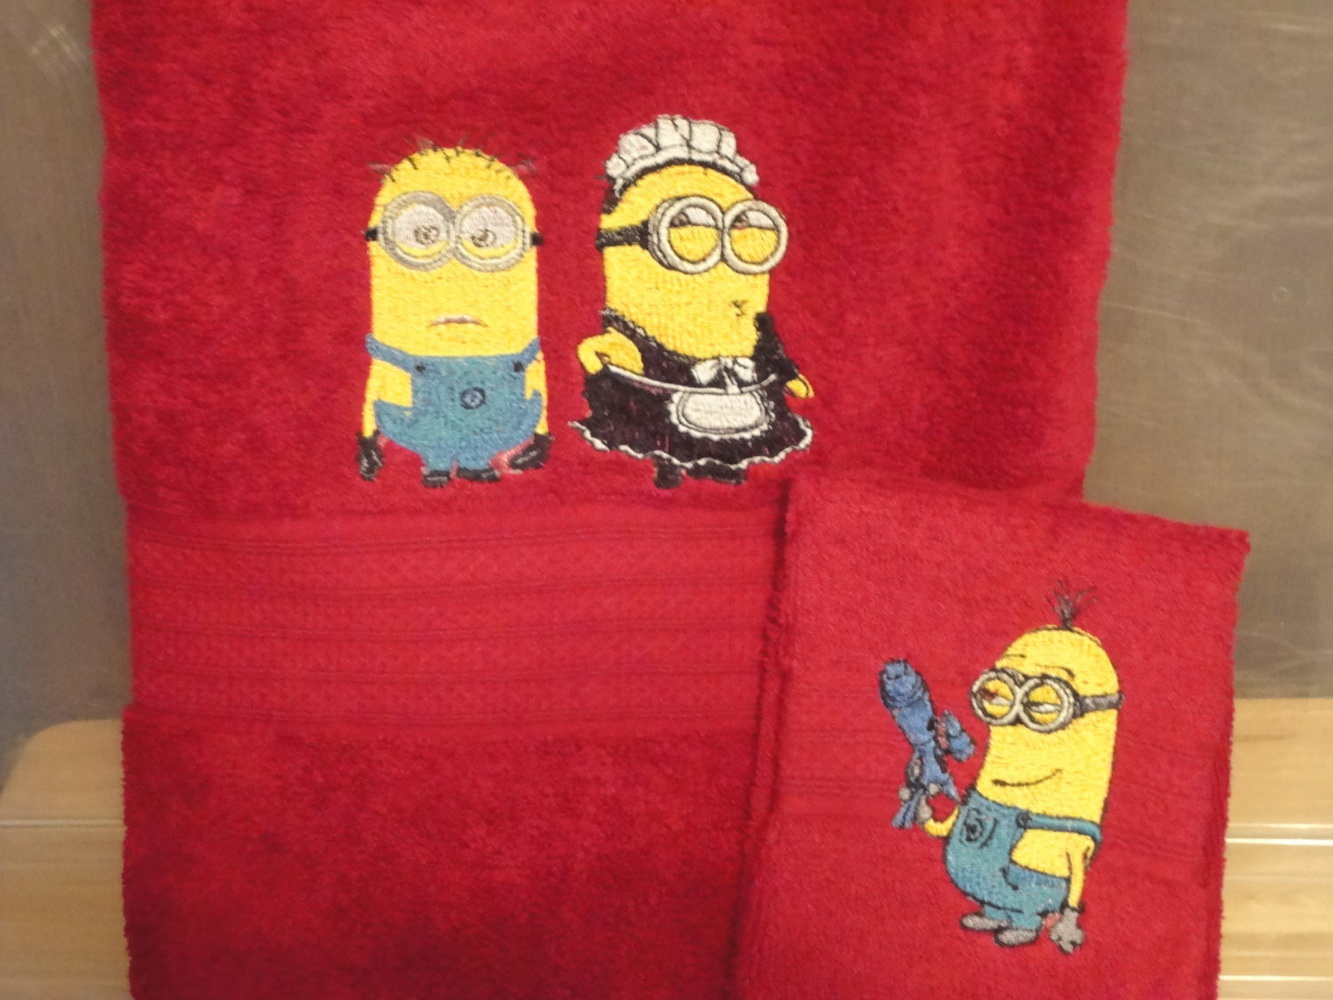 Despicable Me minions embroidered on red bath towel